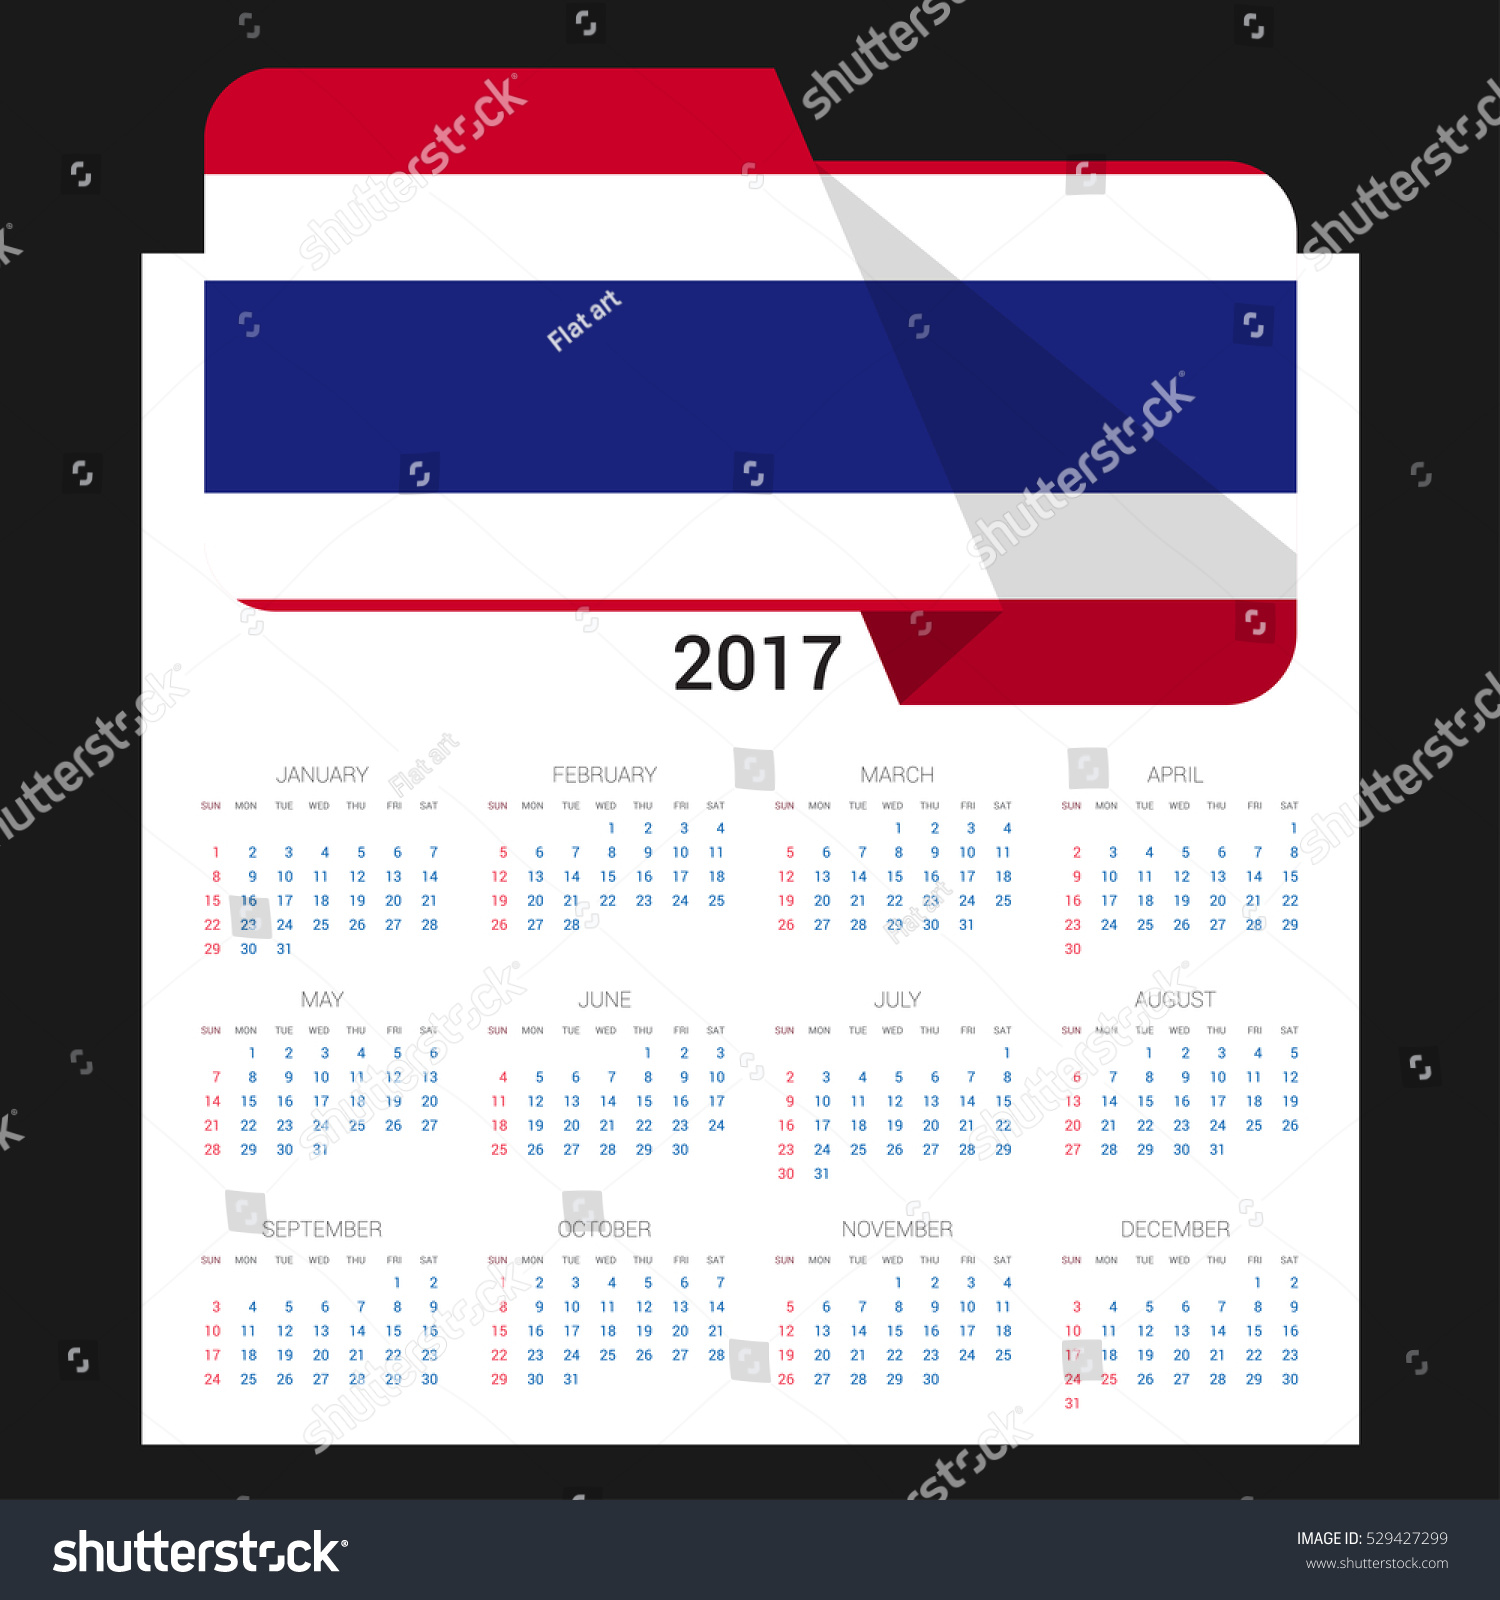 Calendar grid 2017 thailand flag on stock vector 529427299 calendar grid for 2017 with thailand flag on 2017 national flag on a black background biocorpaavc Image collections